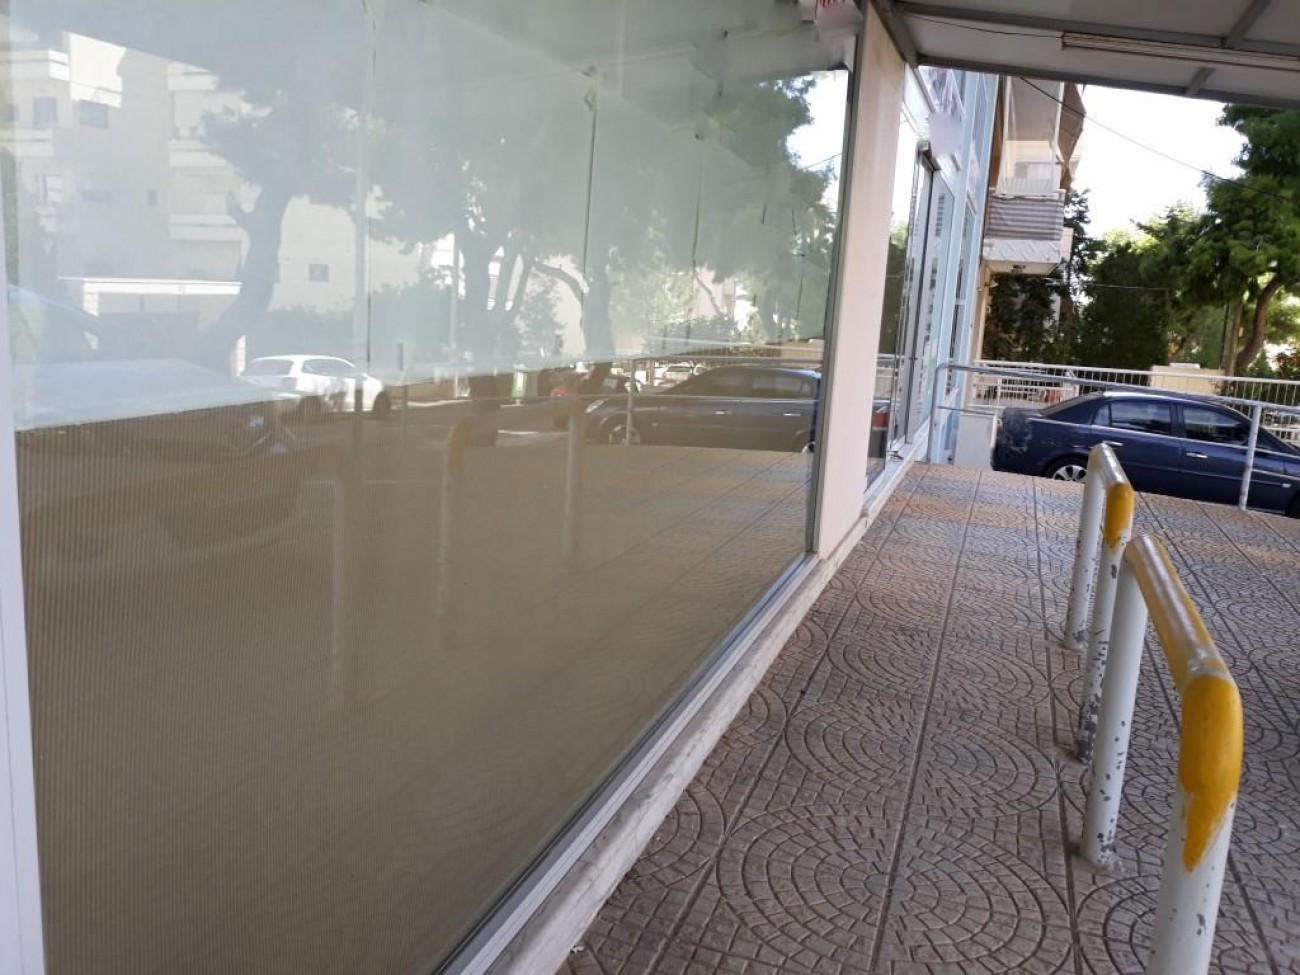 Shop for Rent in Central & South Region of Athens, Greece